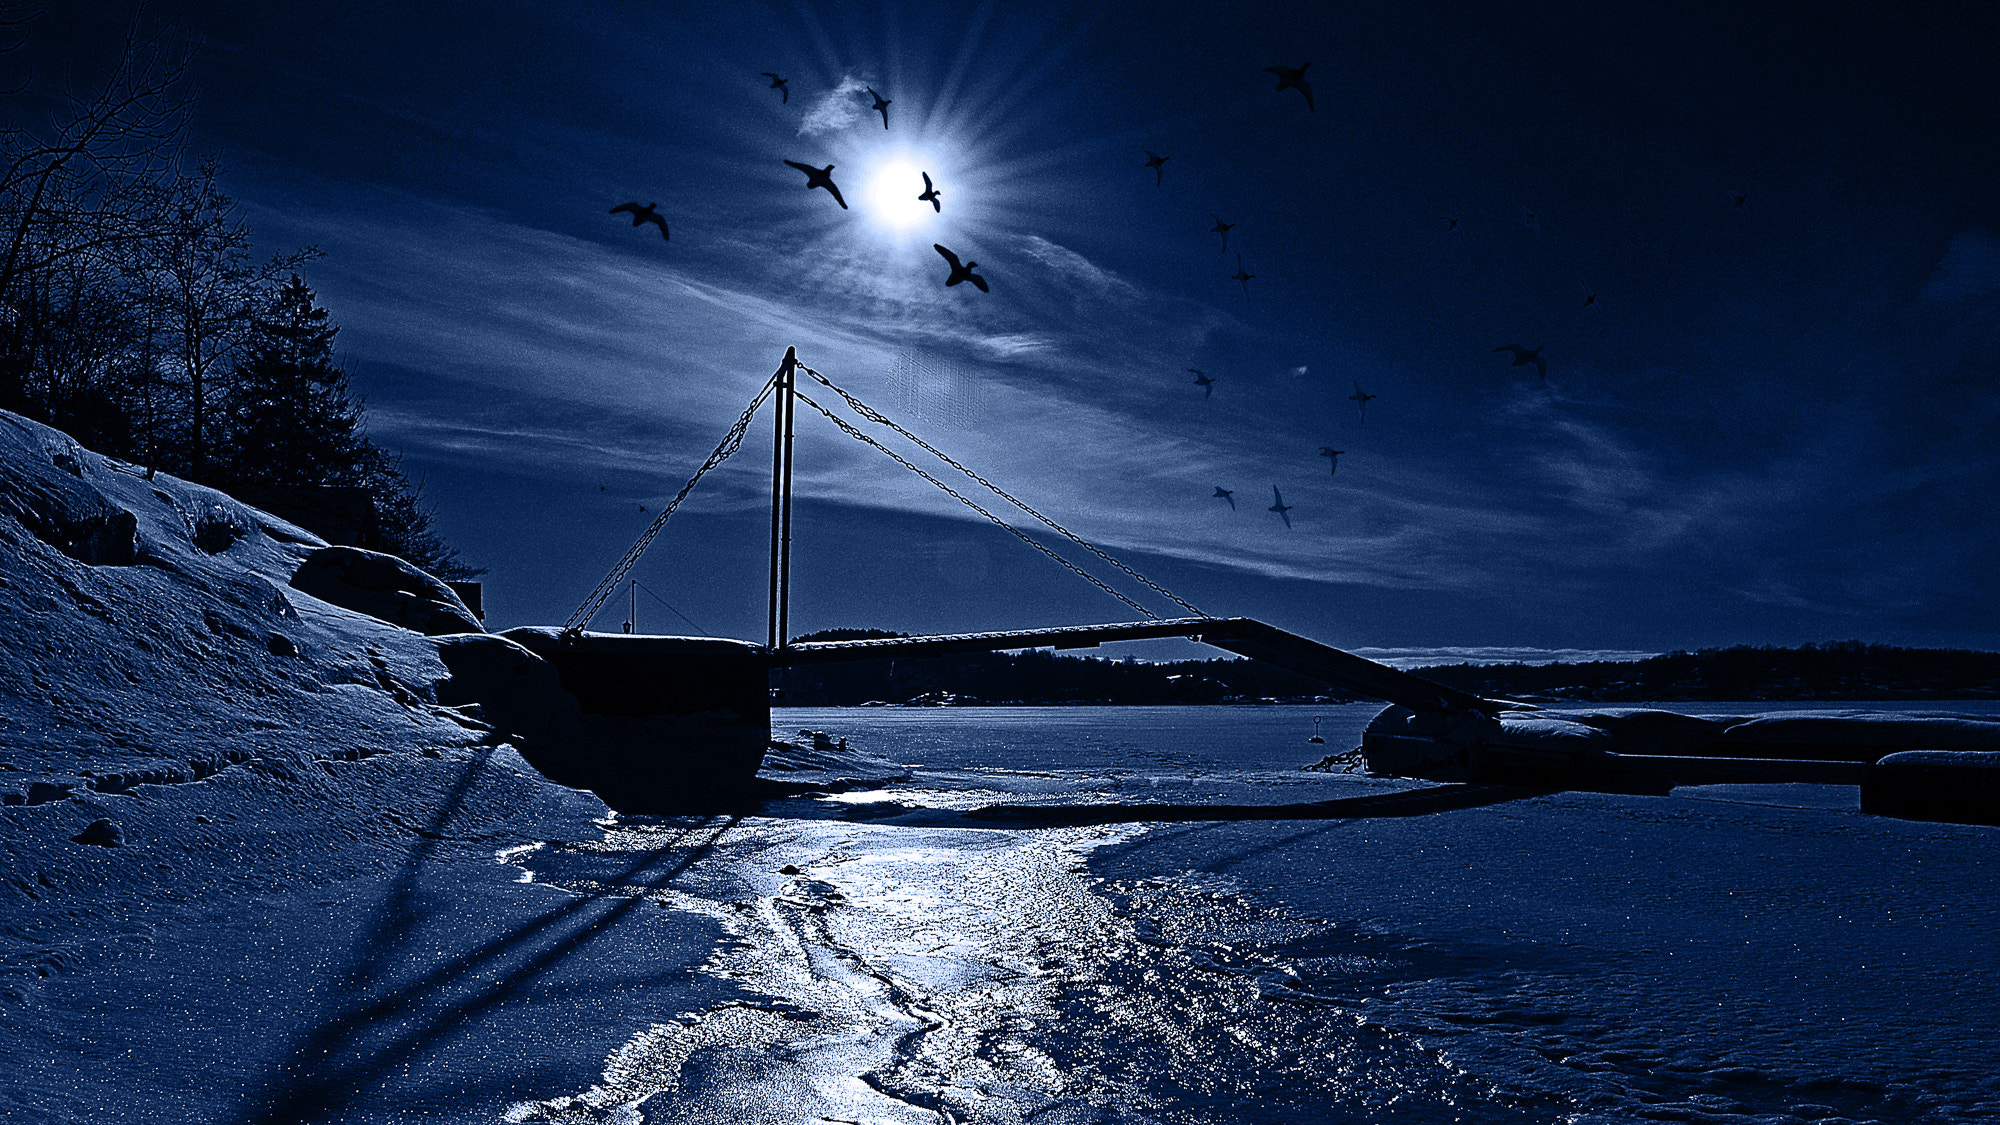 Photograph On a cold winterday by Odd Smedsrud on 500px